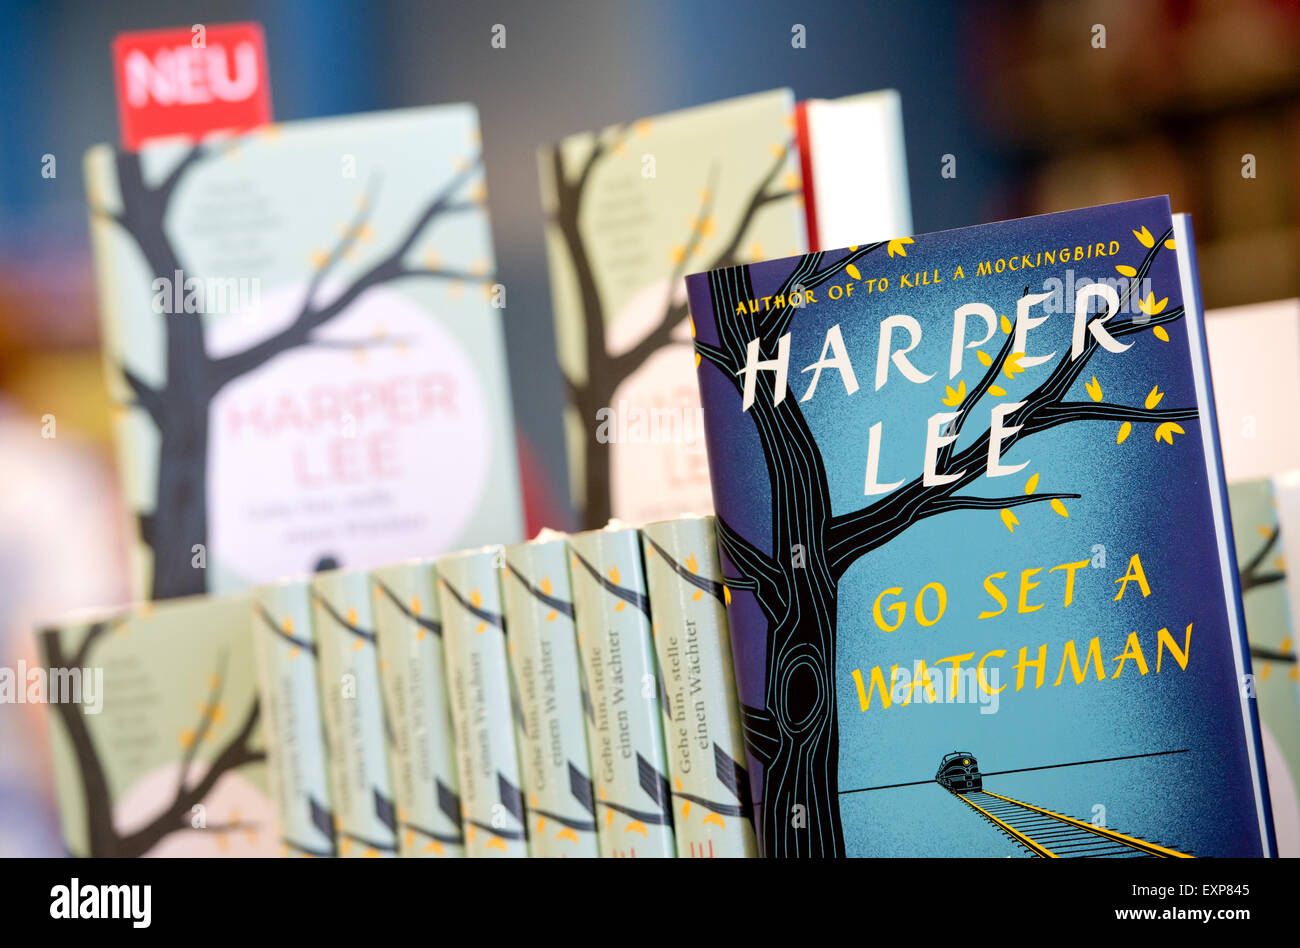 Watchman Book Stockfotos & Watchman Book Bilder - Alamy